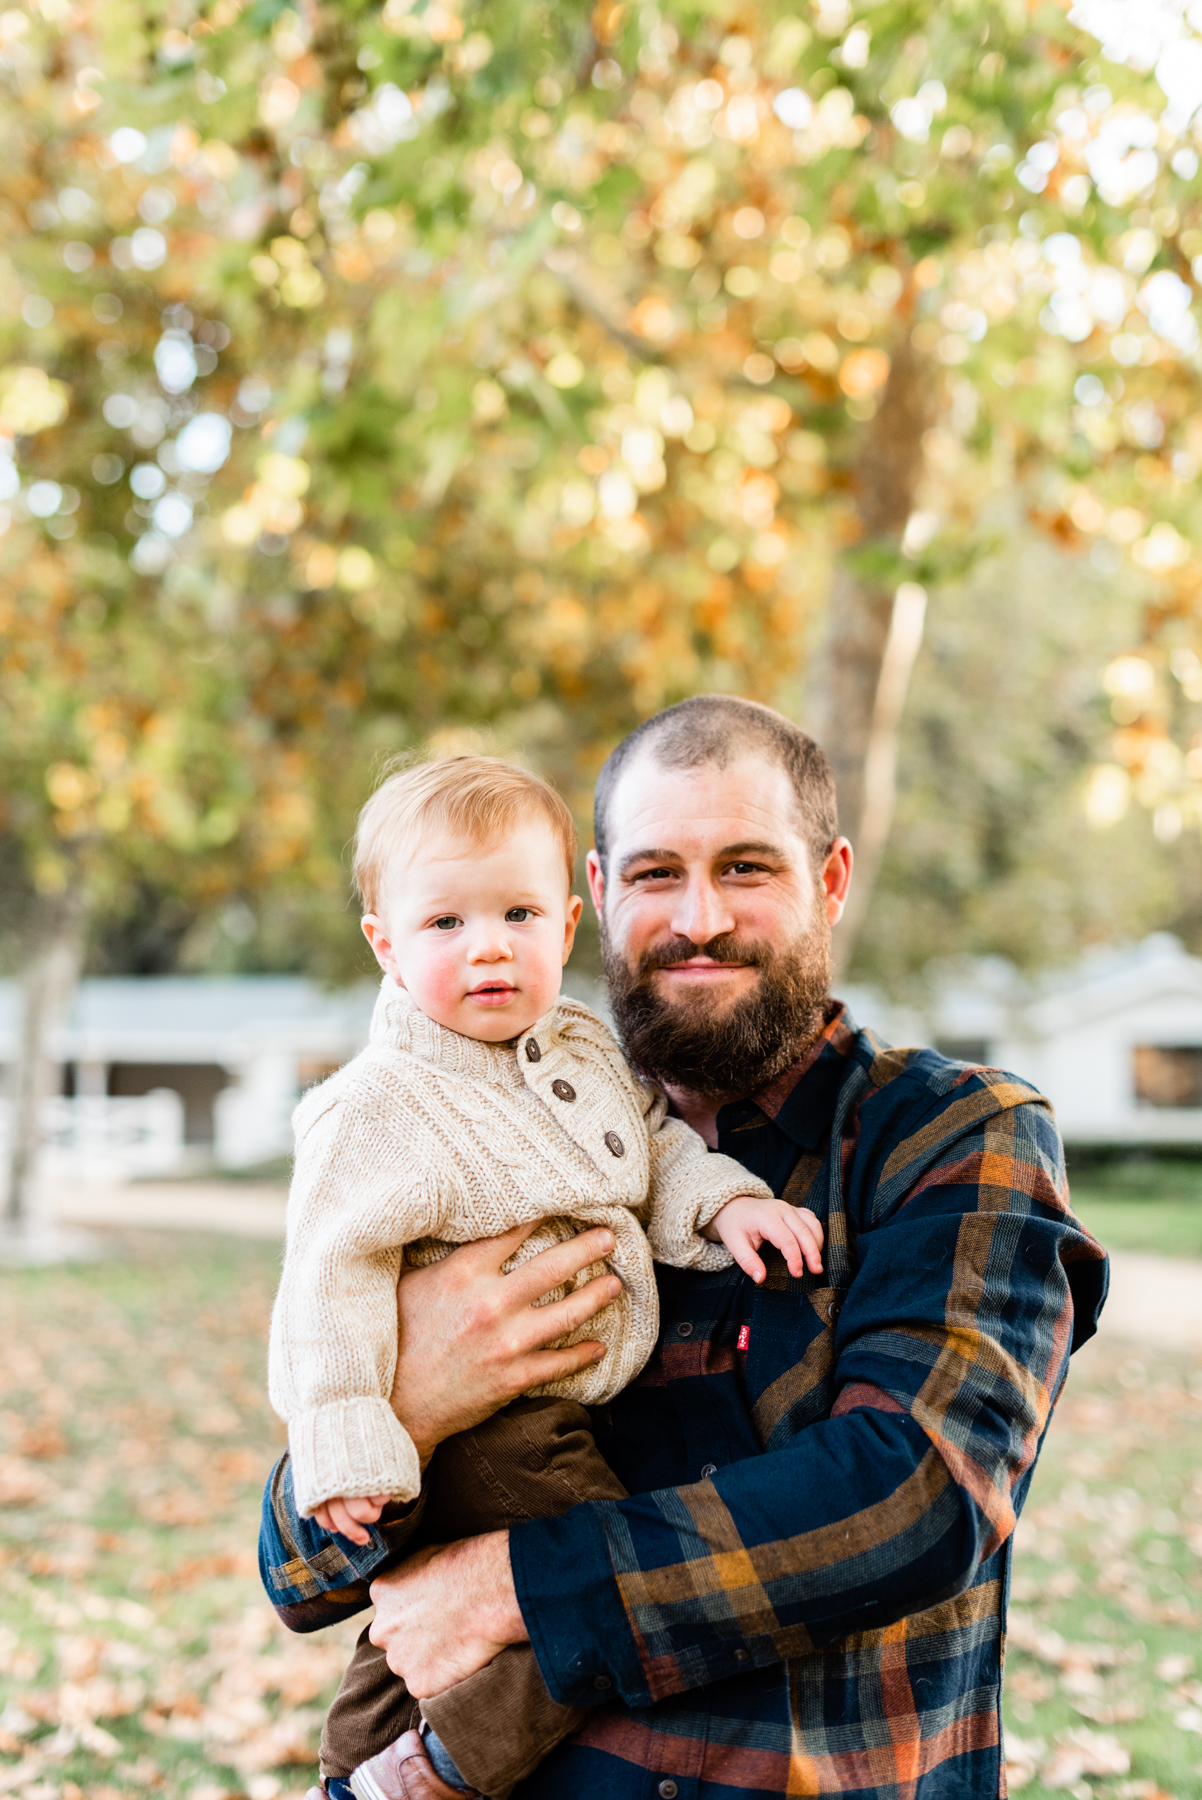 Father and son portrait in Danville, CA.